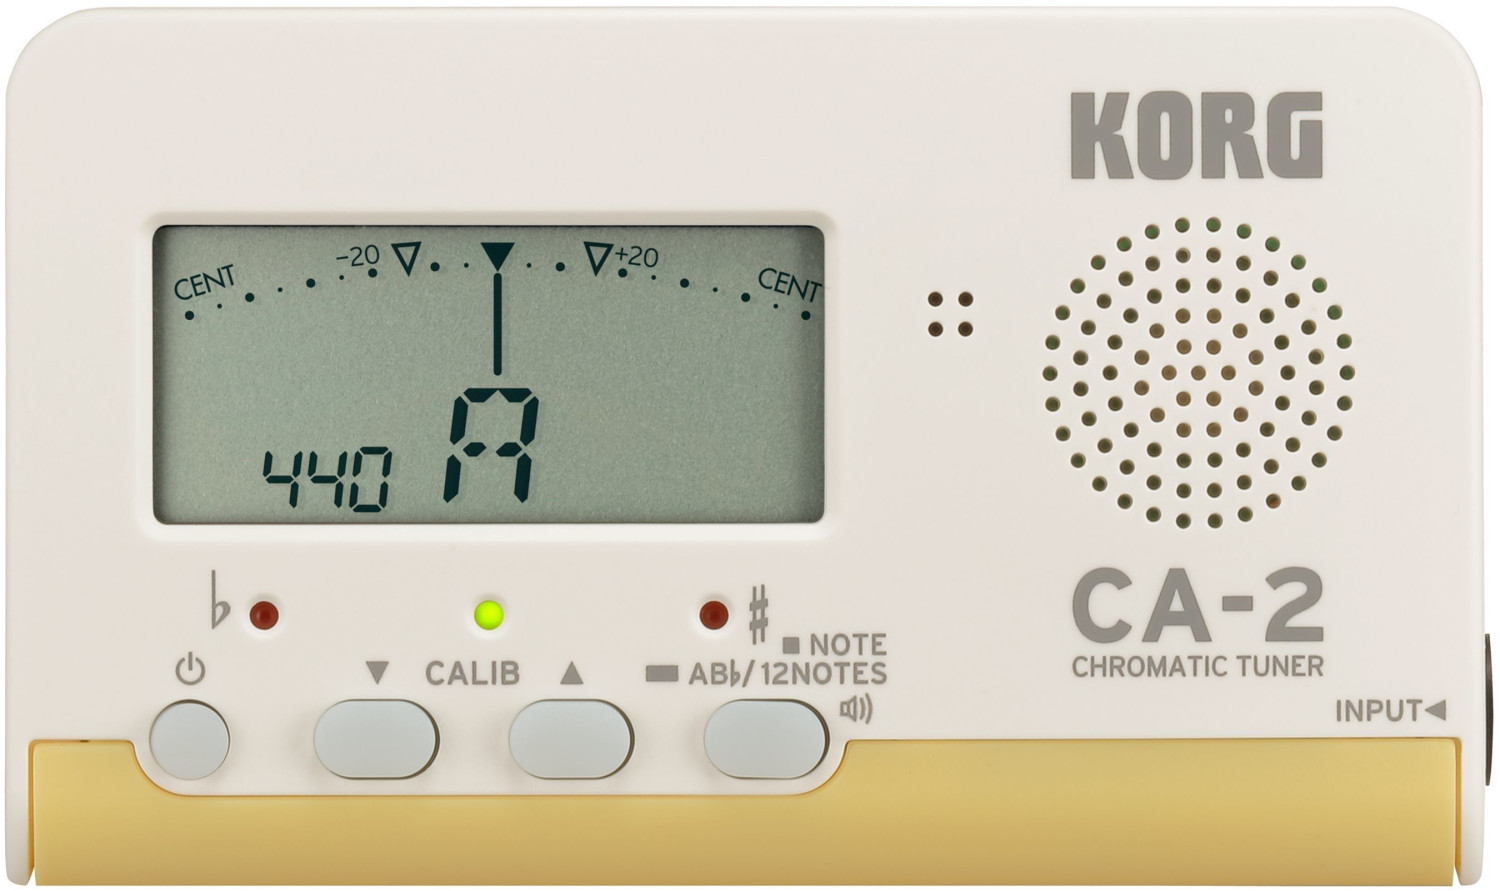 Image of Korg CA-2